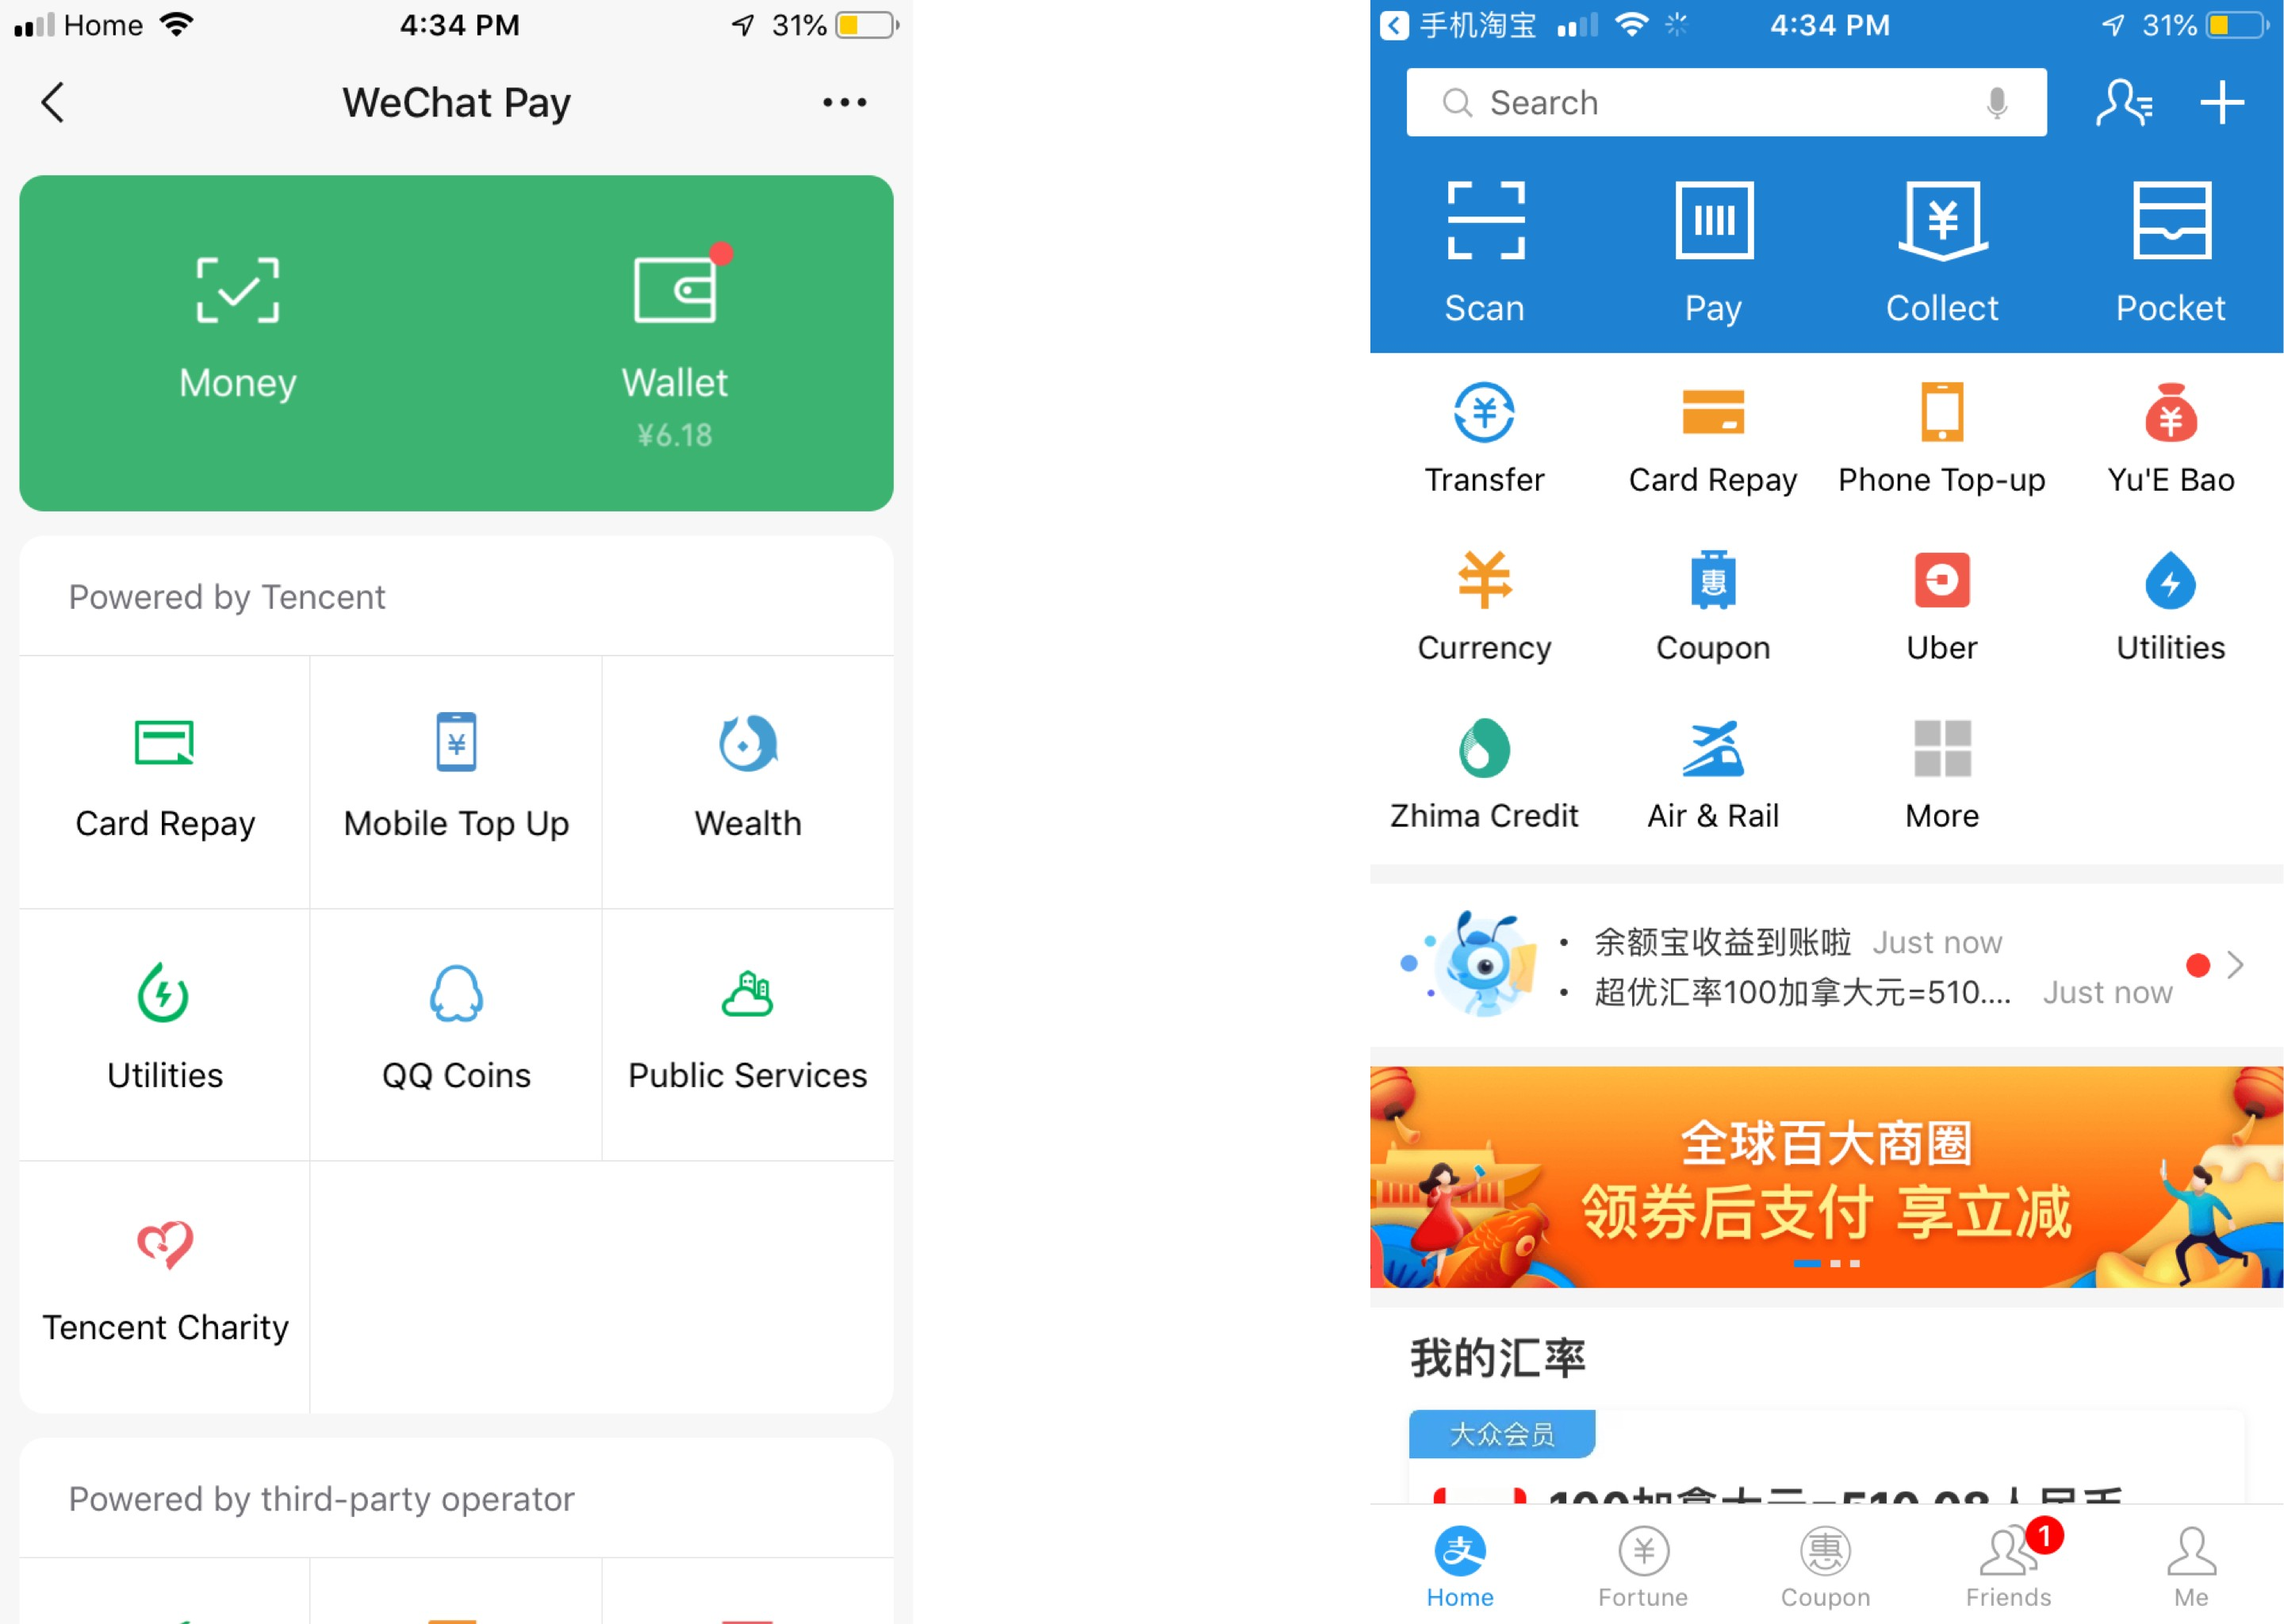 What can we learn from these cool UX observations in Shanghai?